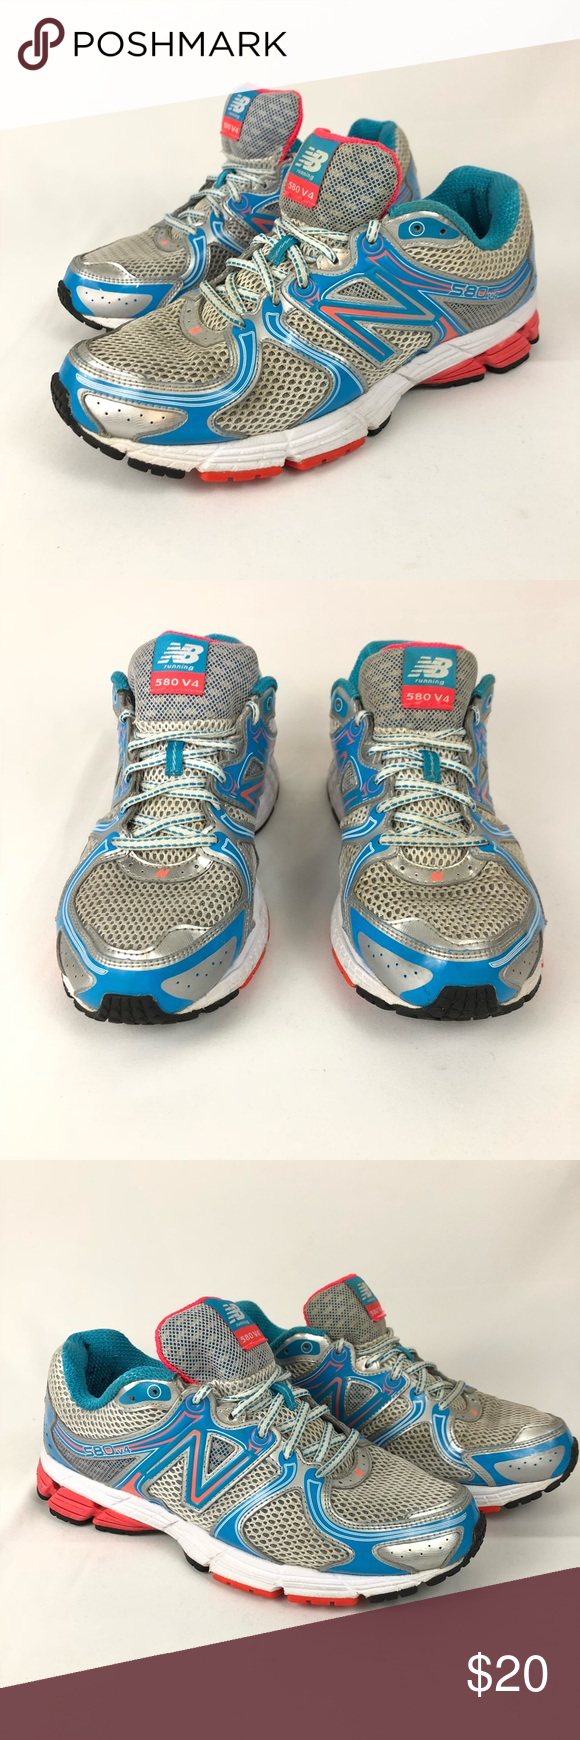 timeless design 40b27 27935 New Balance 580v4 Running Shoes. Exact item for sale is in ...